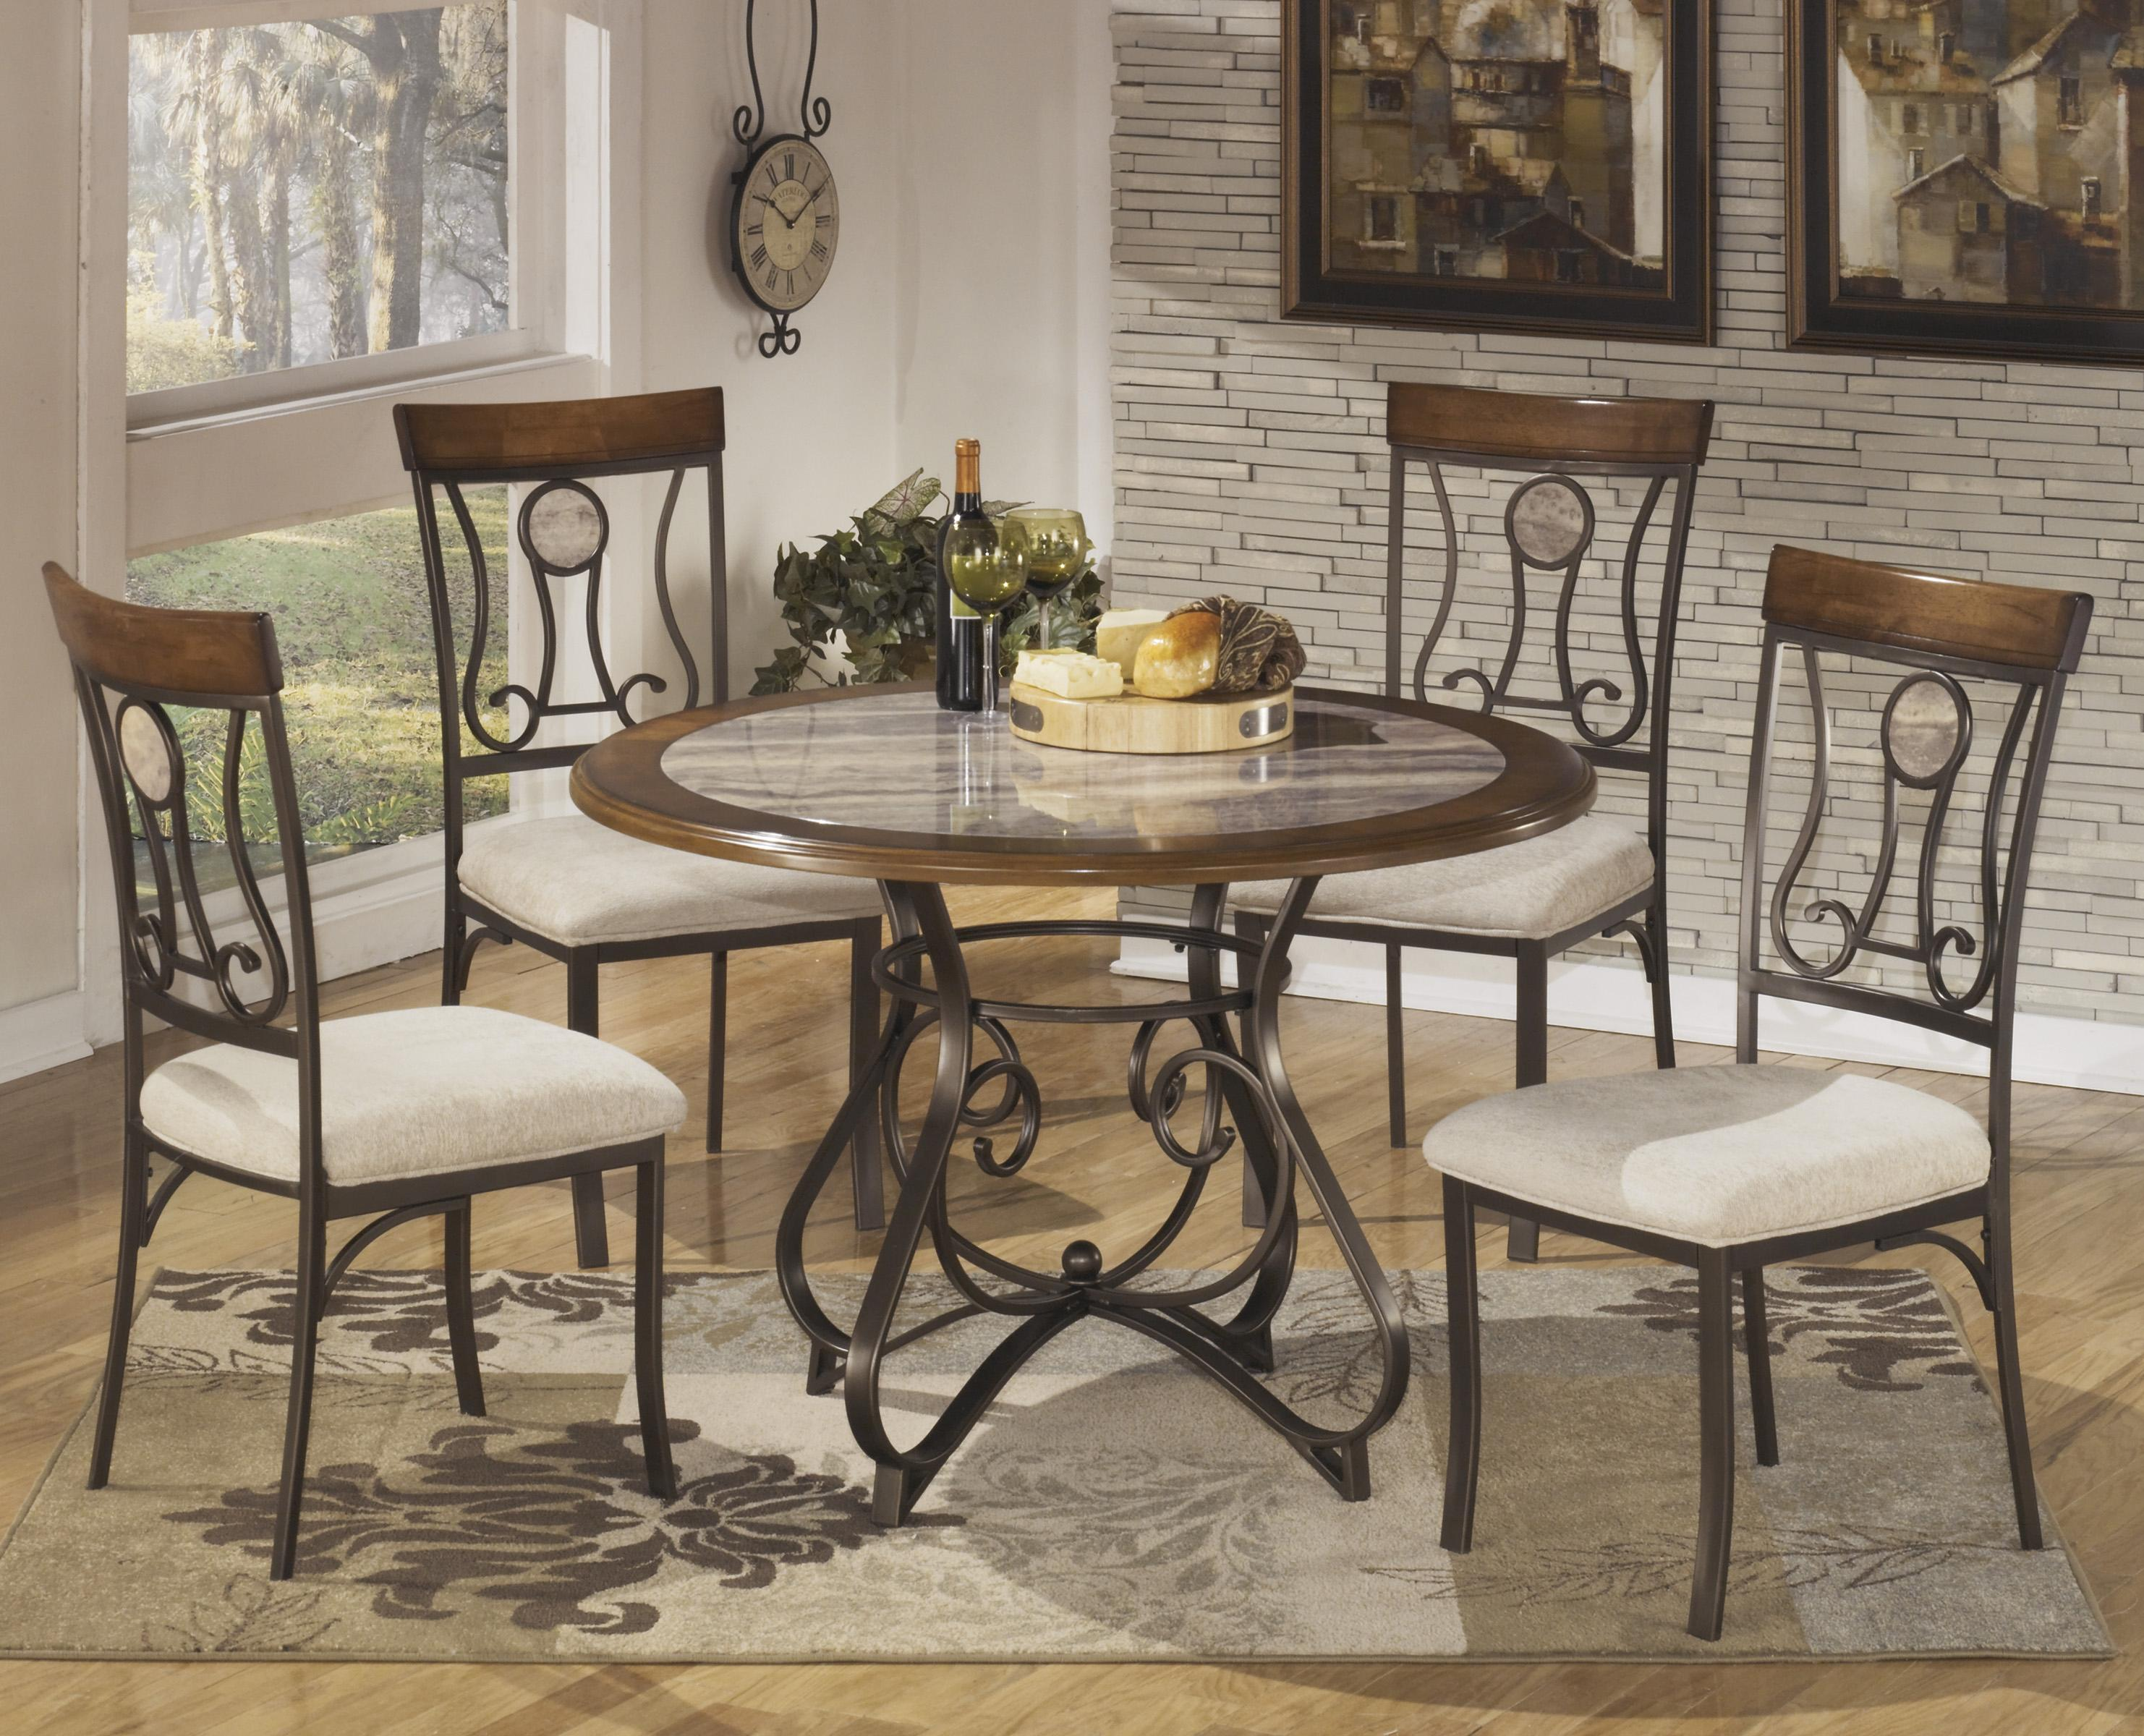 Signature design by ashley hopstand 5 piece round dining for Ashley furniture dinette sets